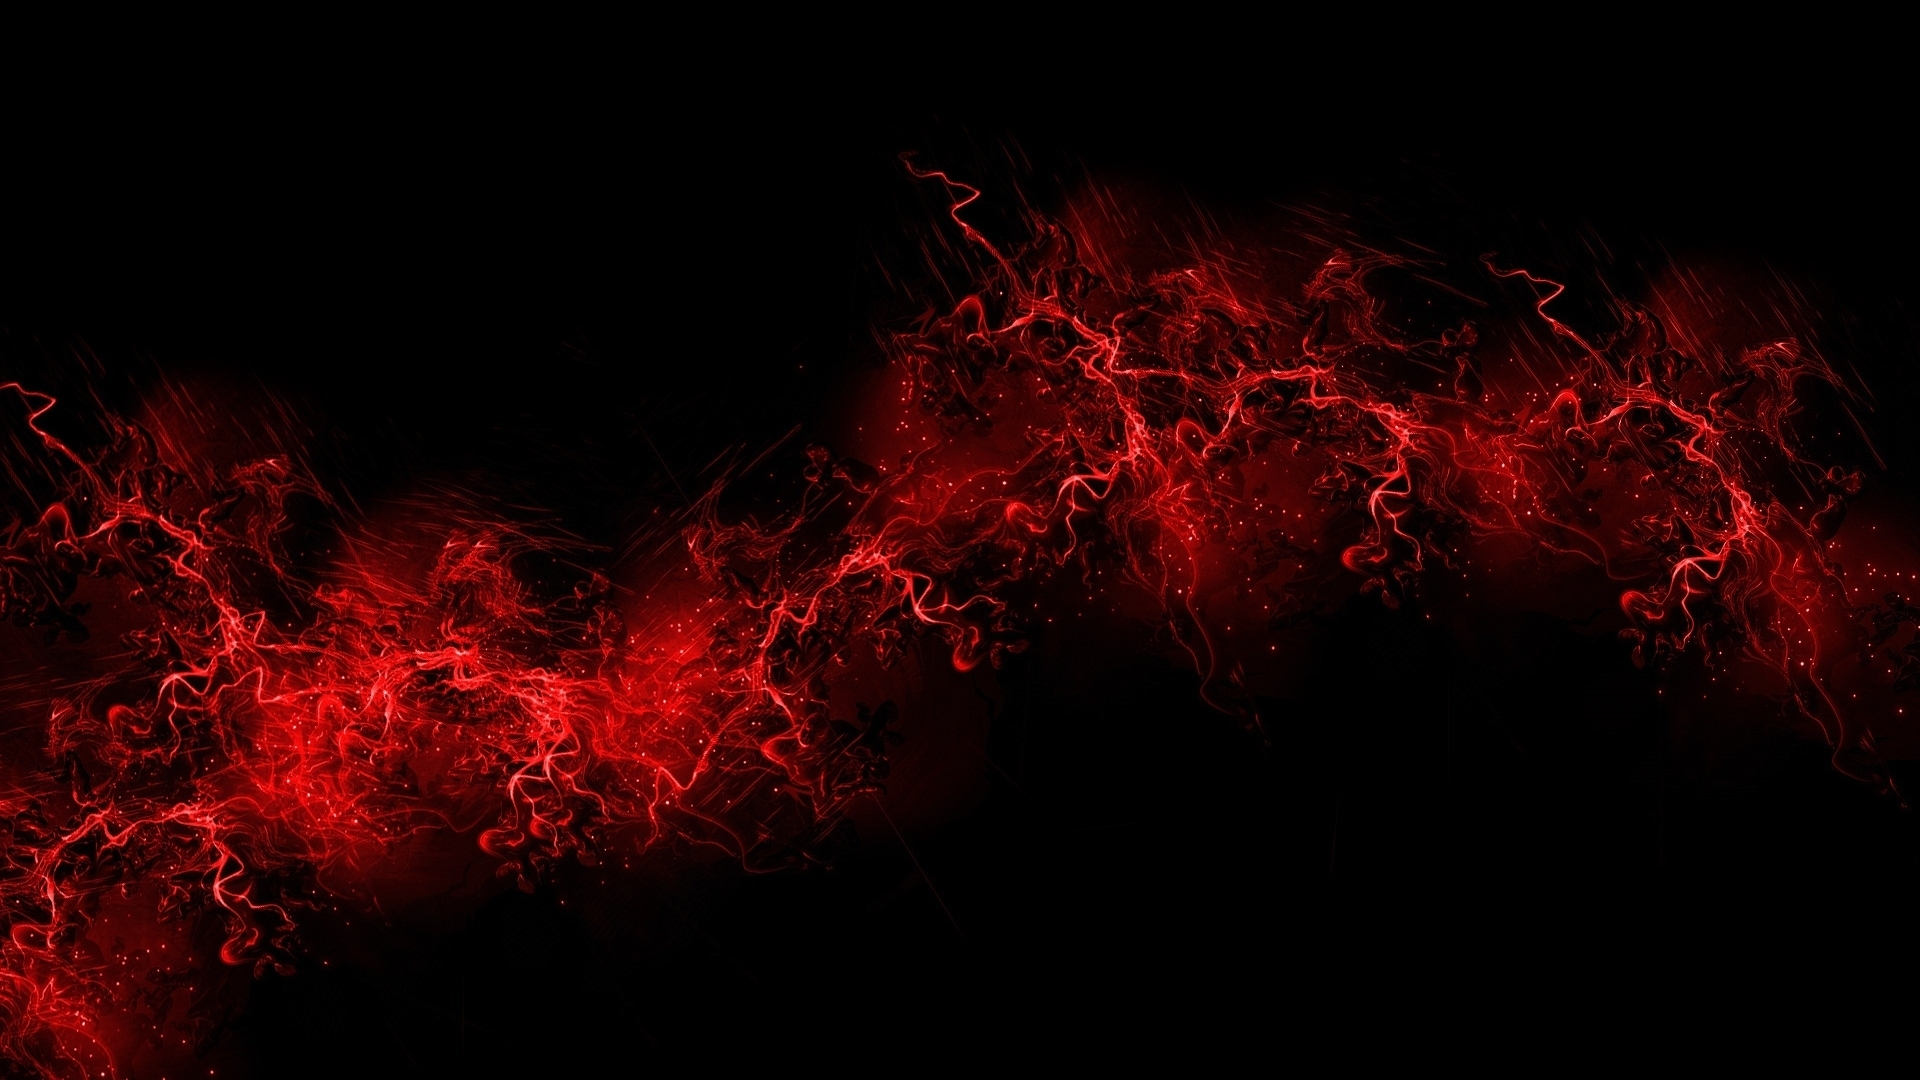 red an black wallpaper #6914 image pictures | free download